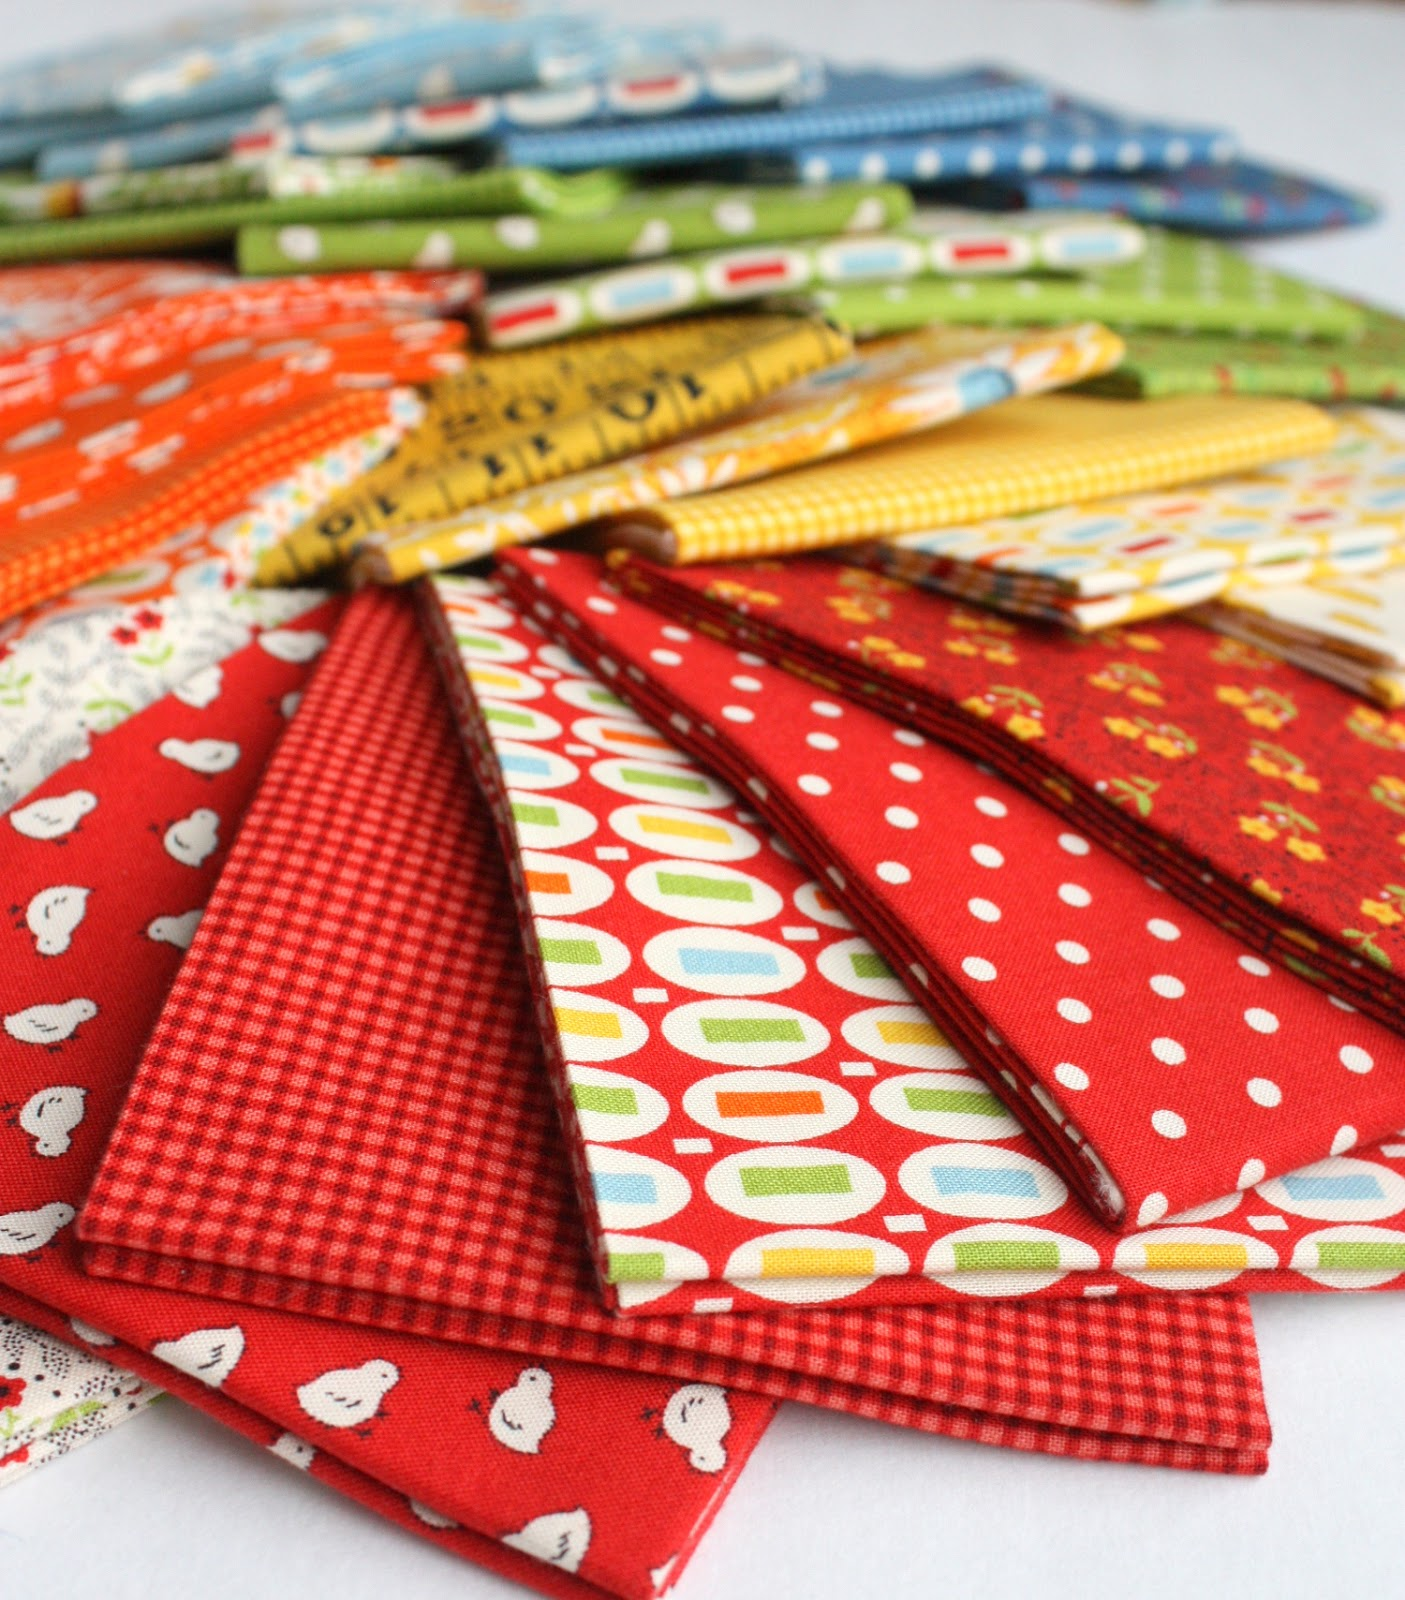 ee508a1c32 Playing with new fabric - Diary of a Quilter - a quilt blog